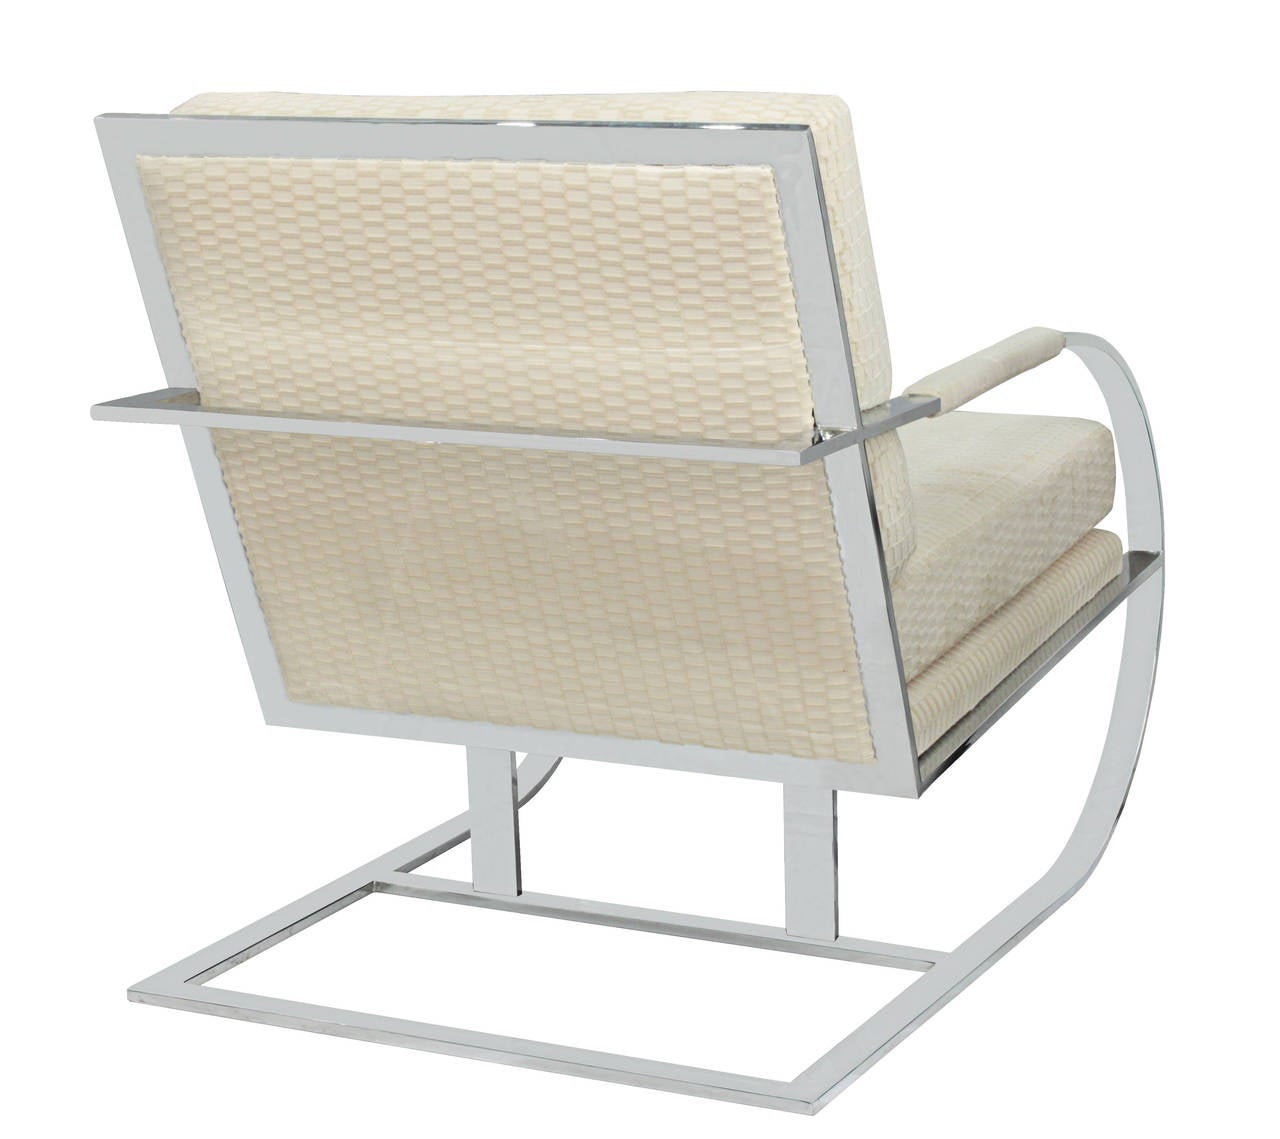 American Cantilevered Lounge Chair with Frame in Chrome by Milo Baughman For Sale